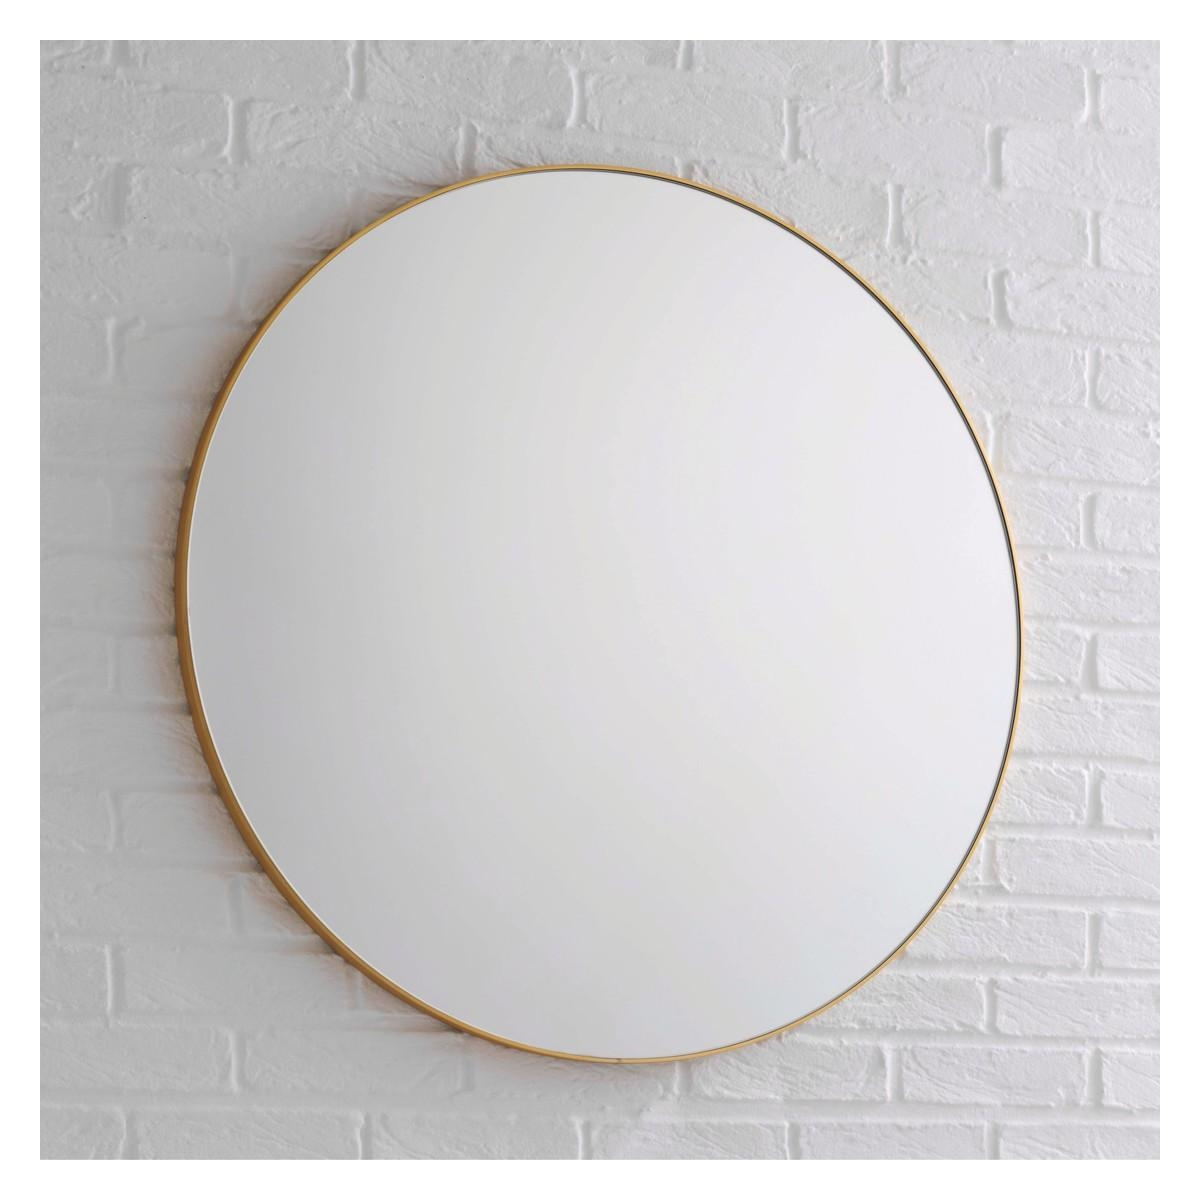 Patsy Large Round Gold Wall Mirror D82Cm | Buy Now At Habitat Uk Within Large Circular Mirror (Image 19 of 20)